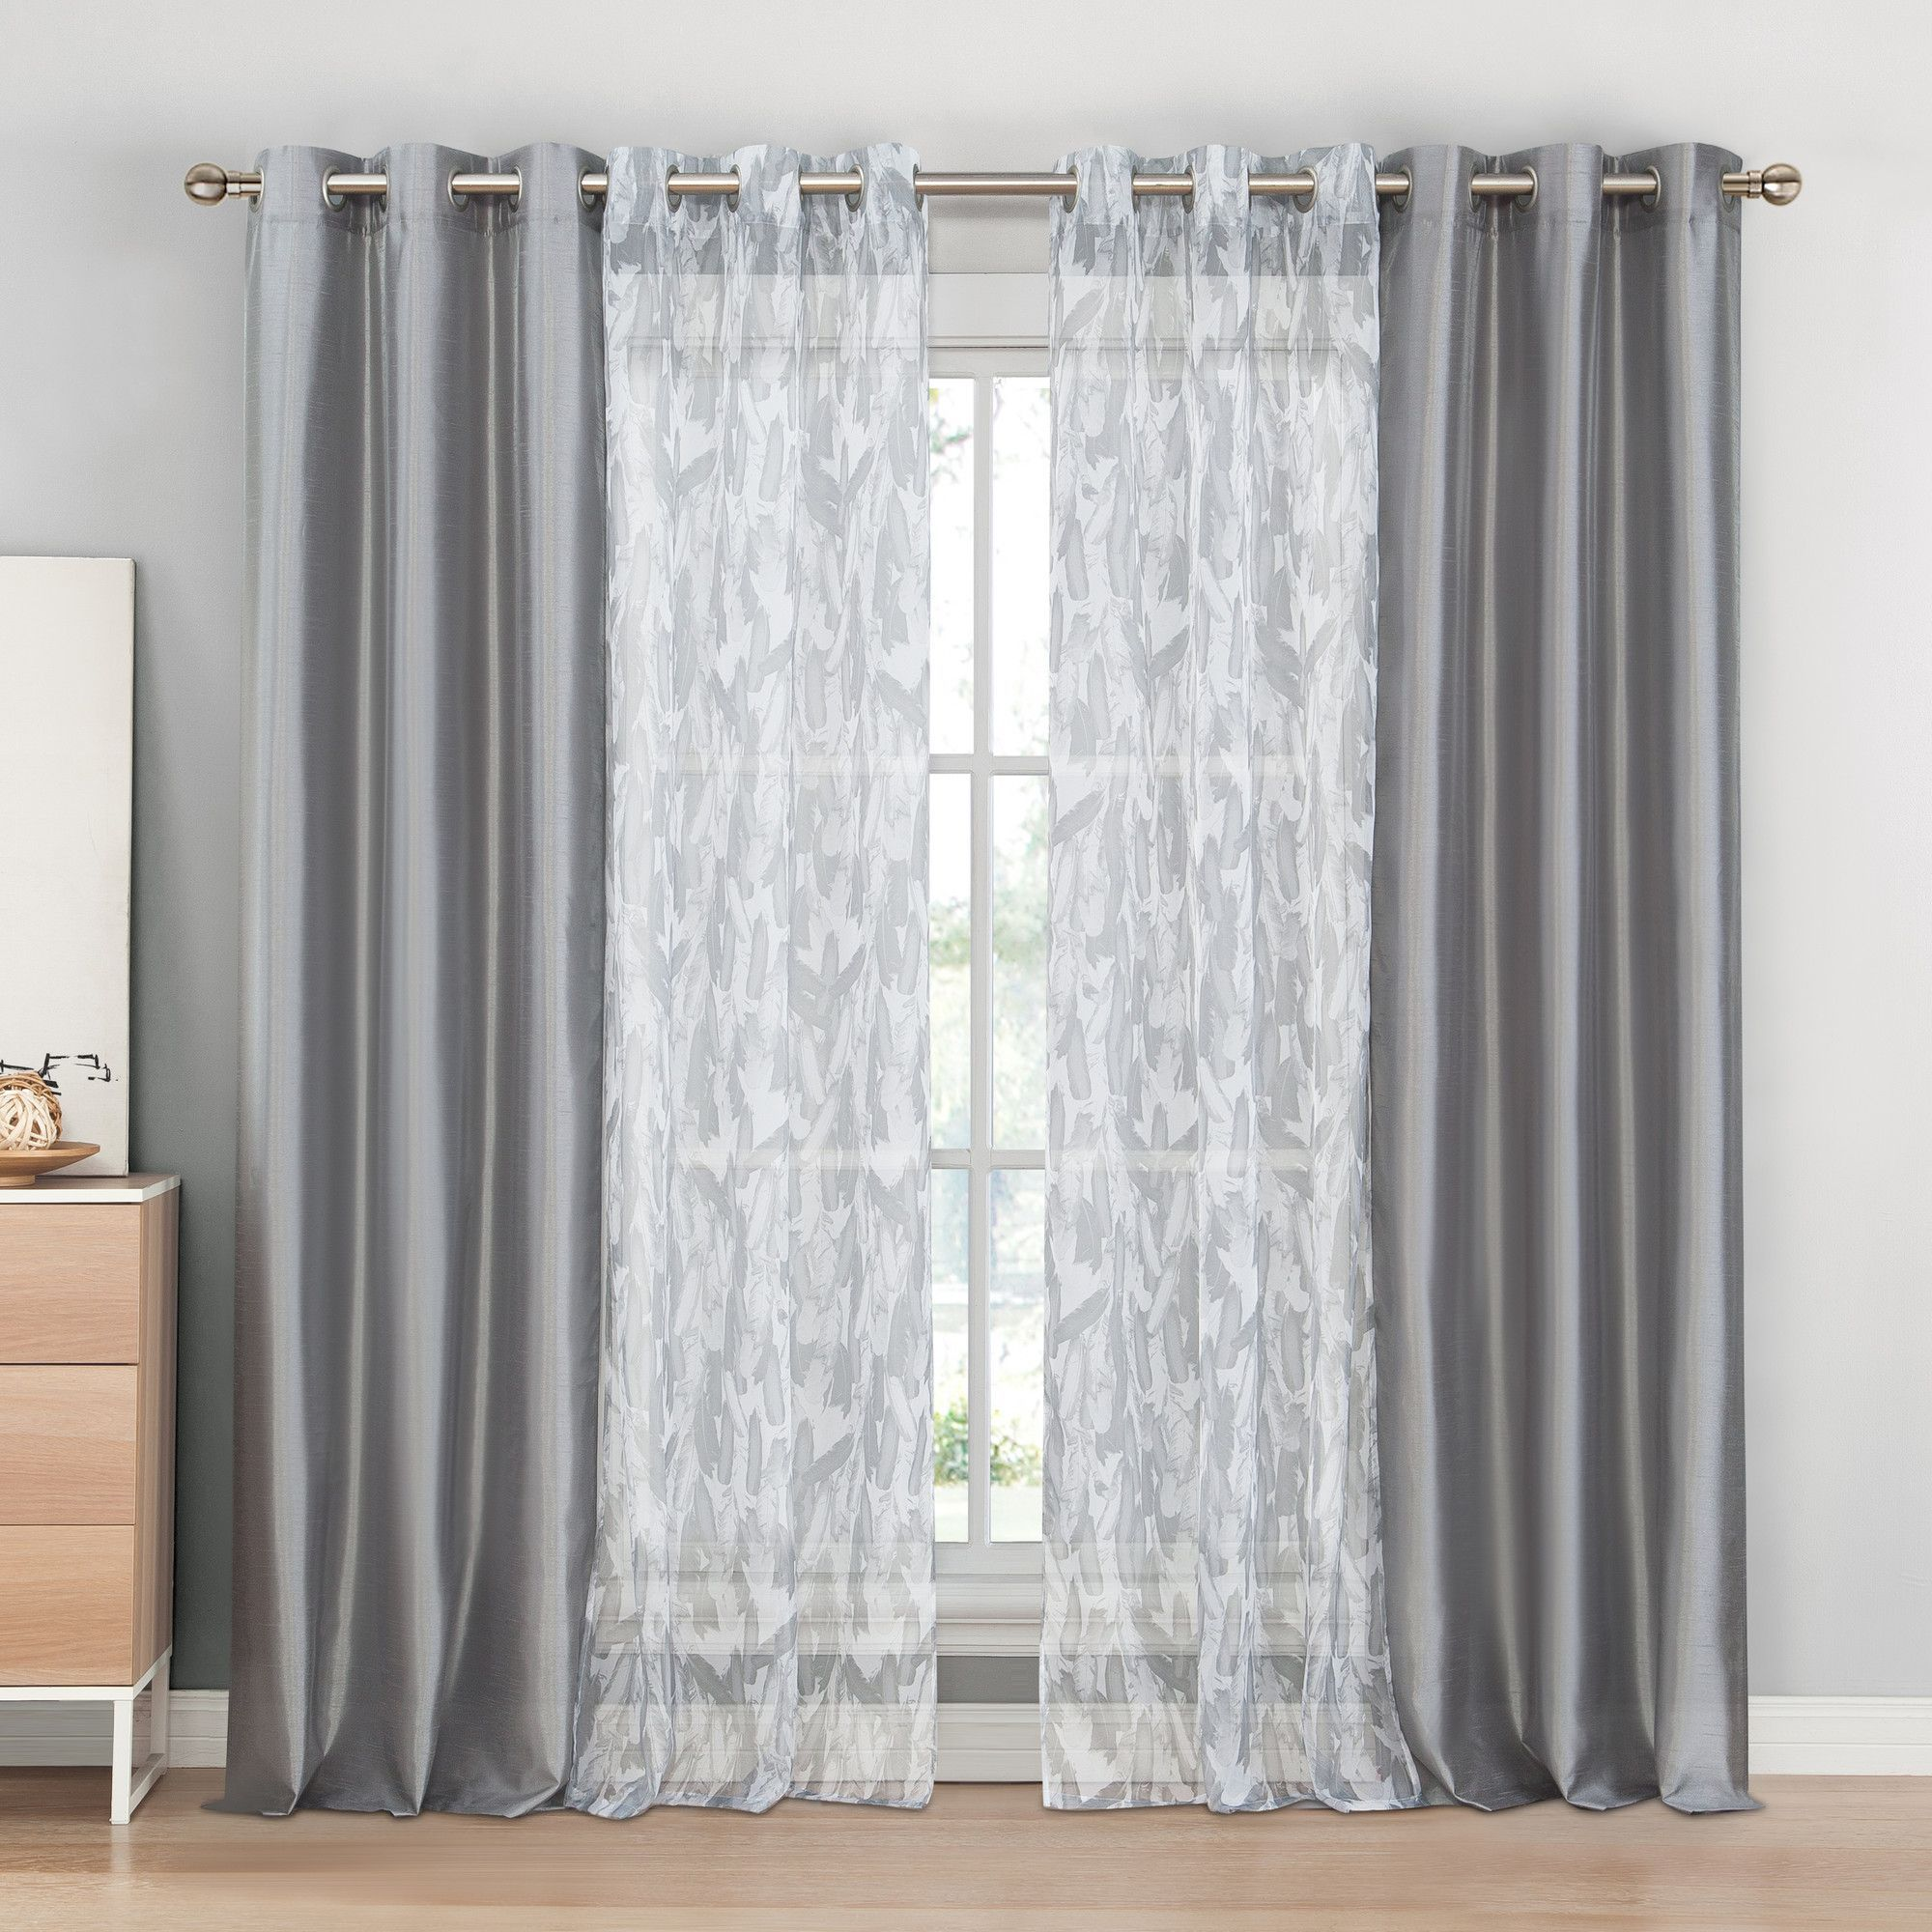 Solid Blackout Thermal Grommet Curtain Panels Set Of 2 Curtains Curtains With Blinds Panel Curtains